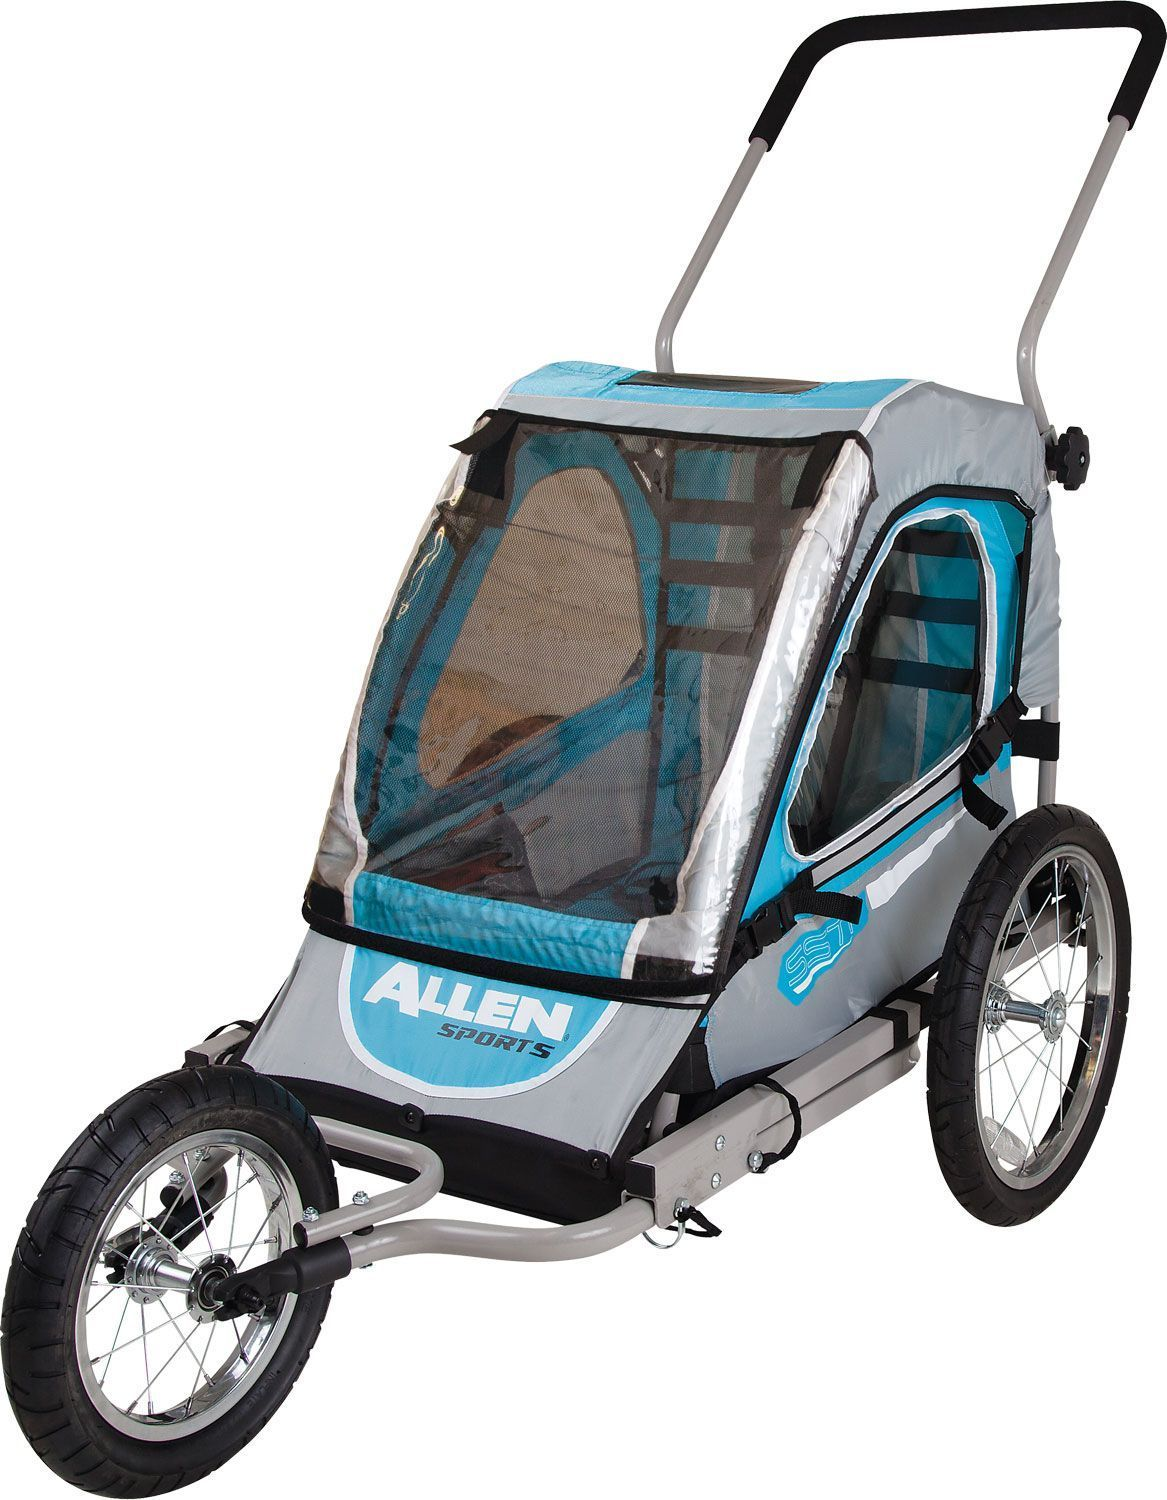 Allen Sports Deluxe Single Bicycle Trailer (With images